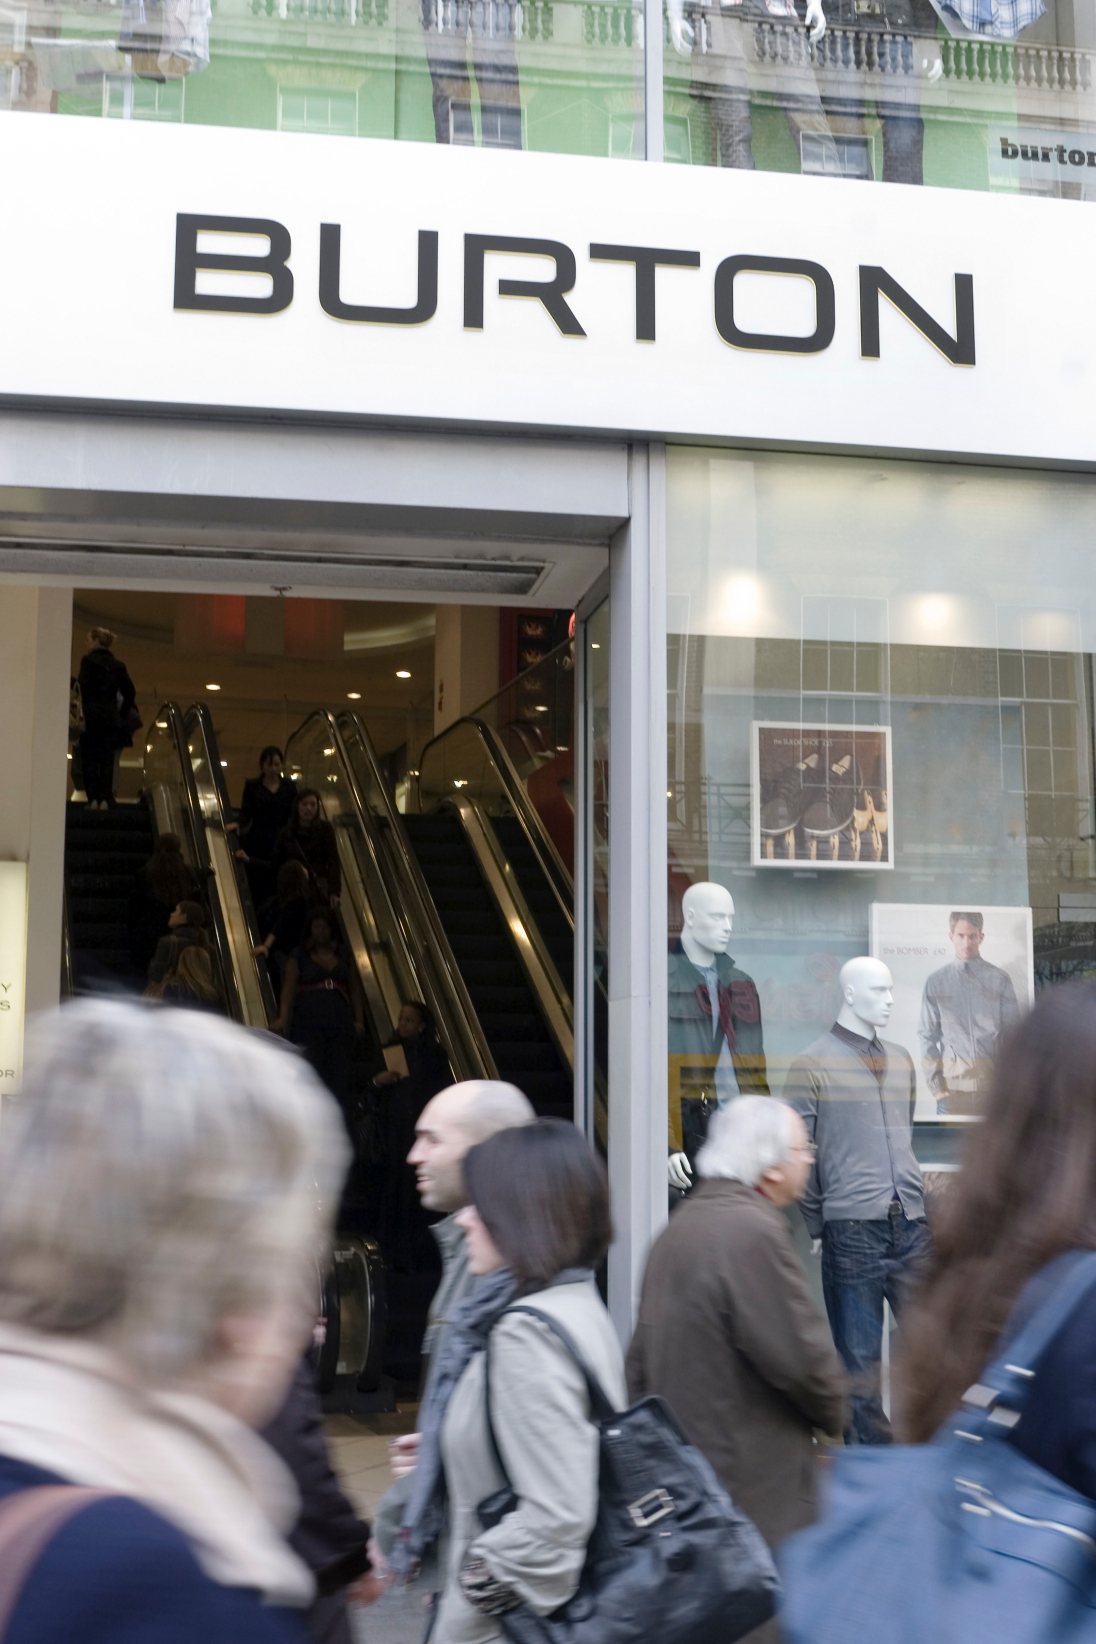 The tale of Topshop owner Arcadia Group's demise is one of a high street in decline as digital players like Boohoo buy brands but no stores.